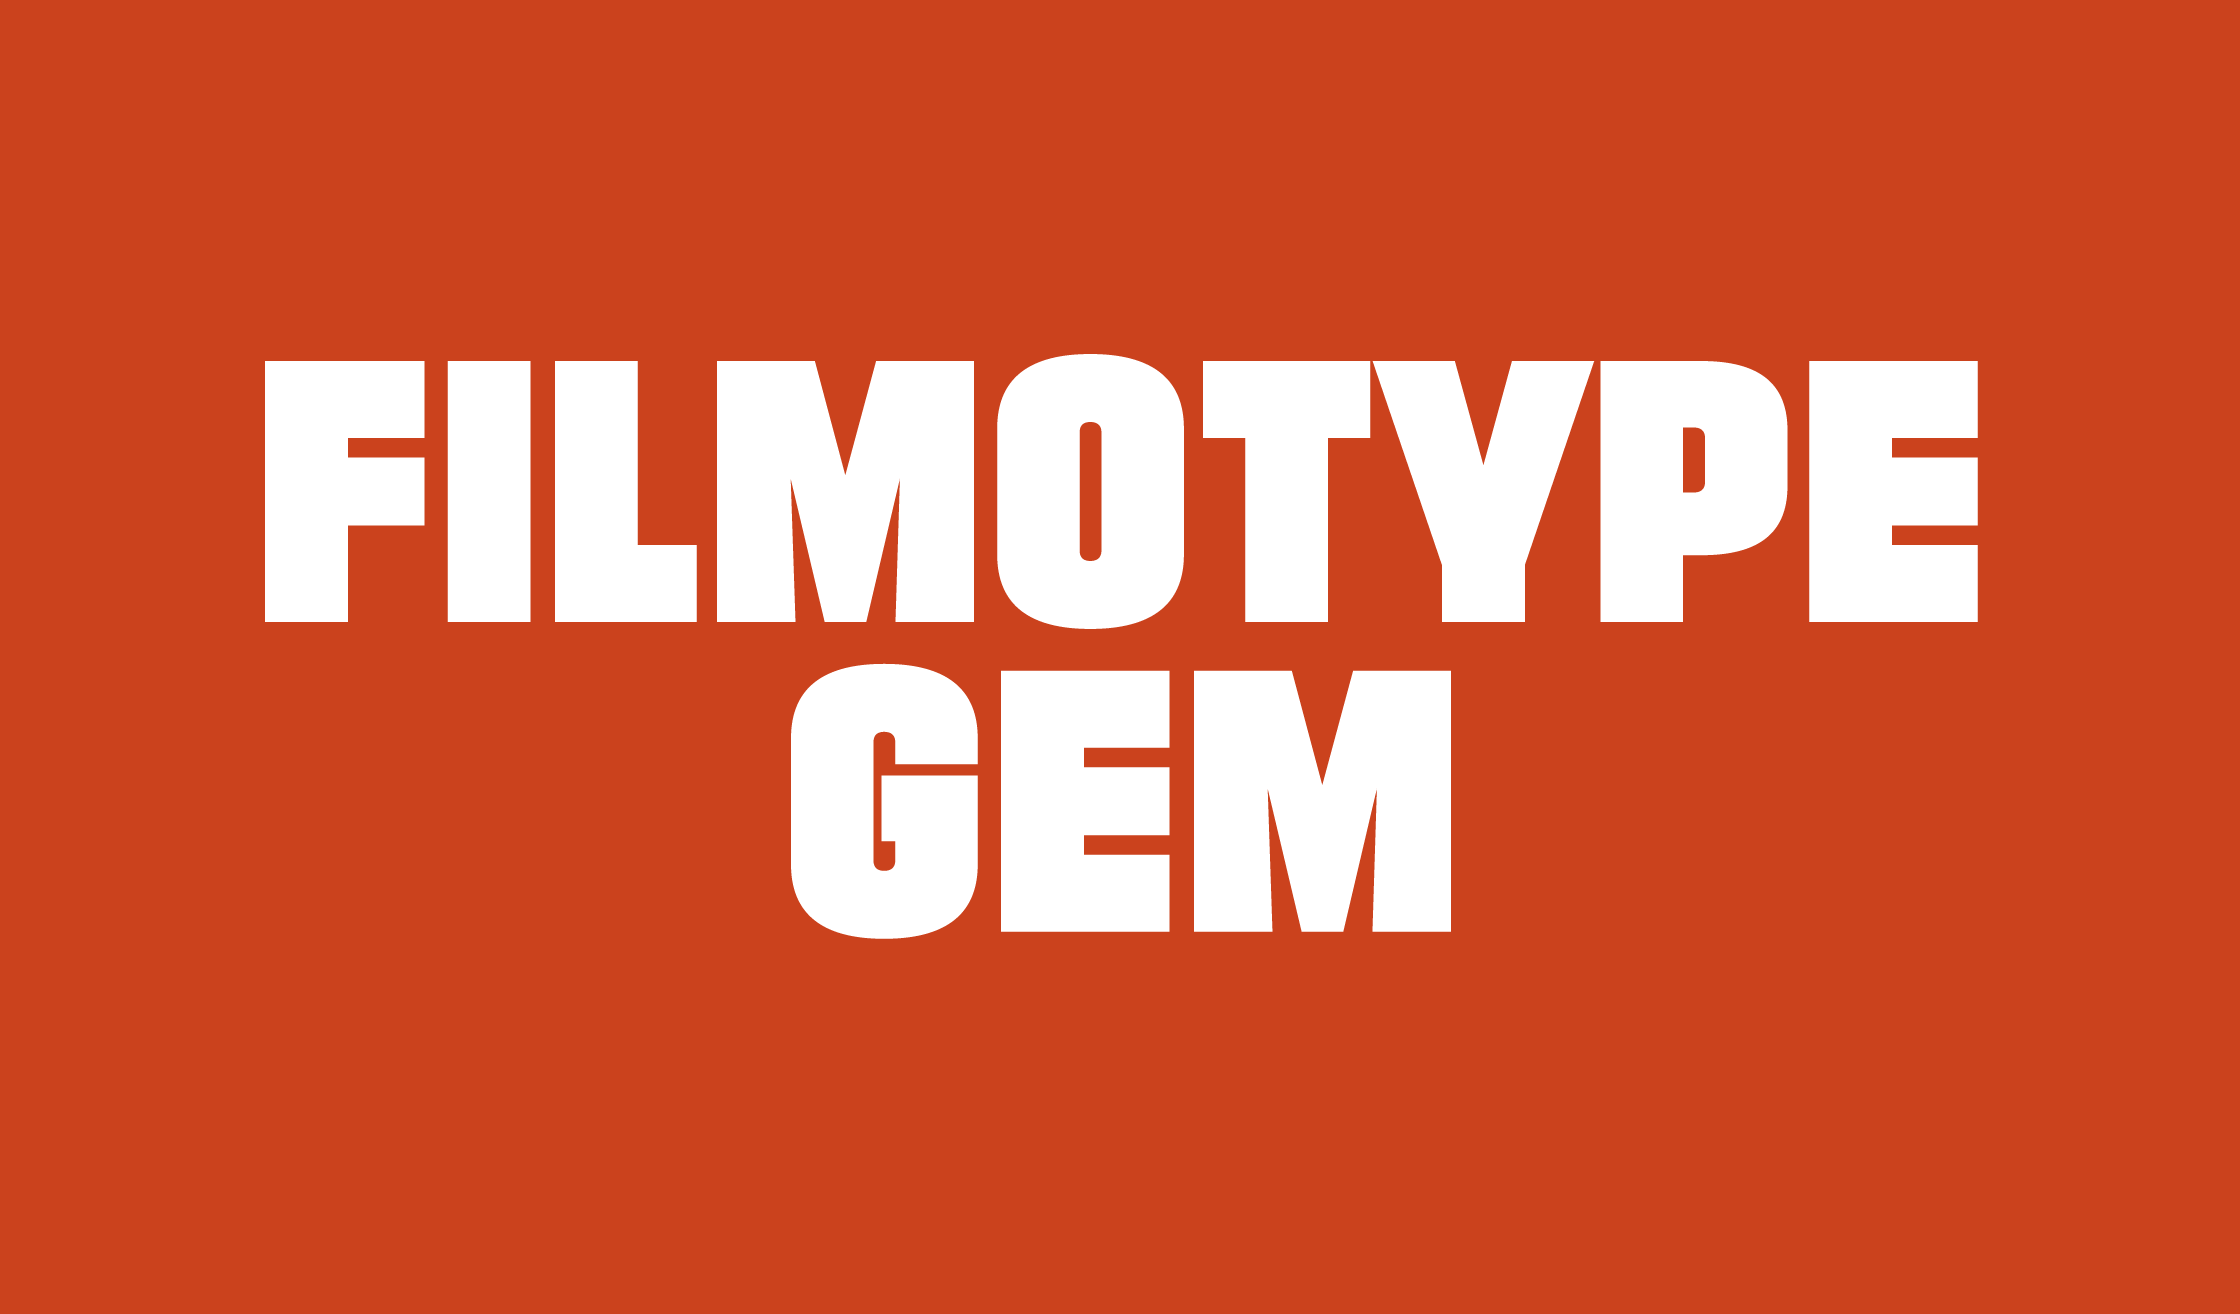 Filmotype Gem Banner Name 2240